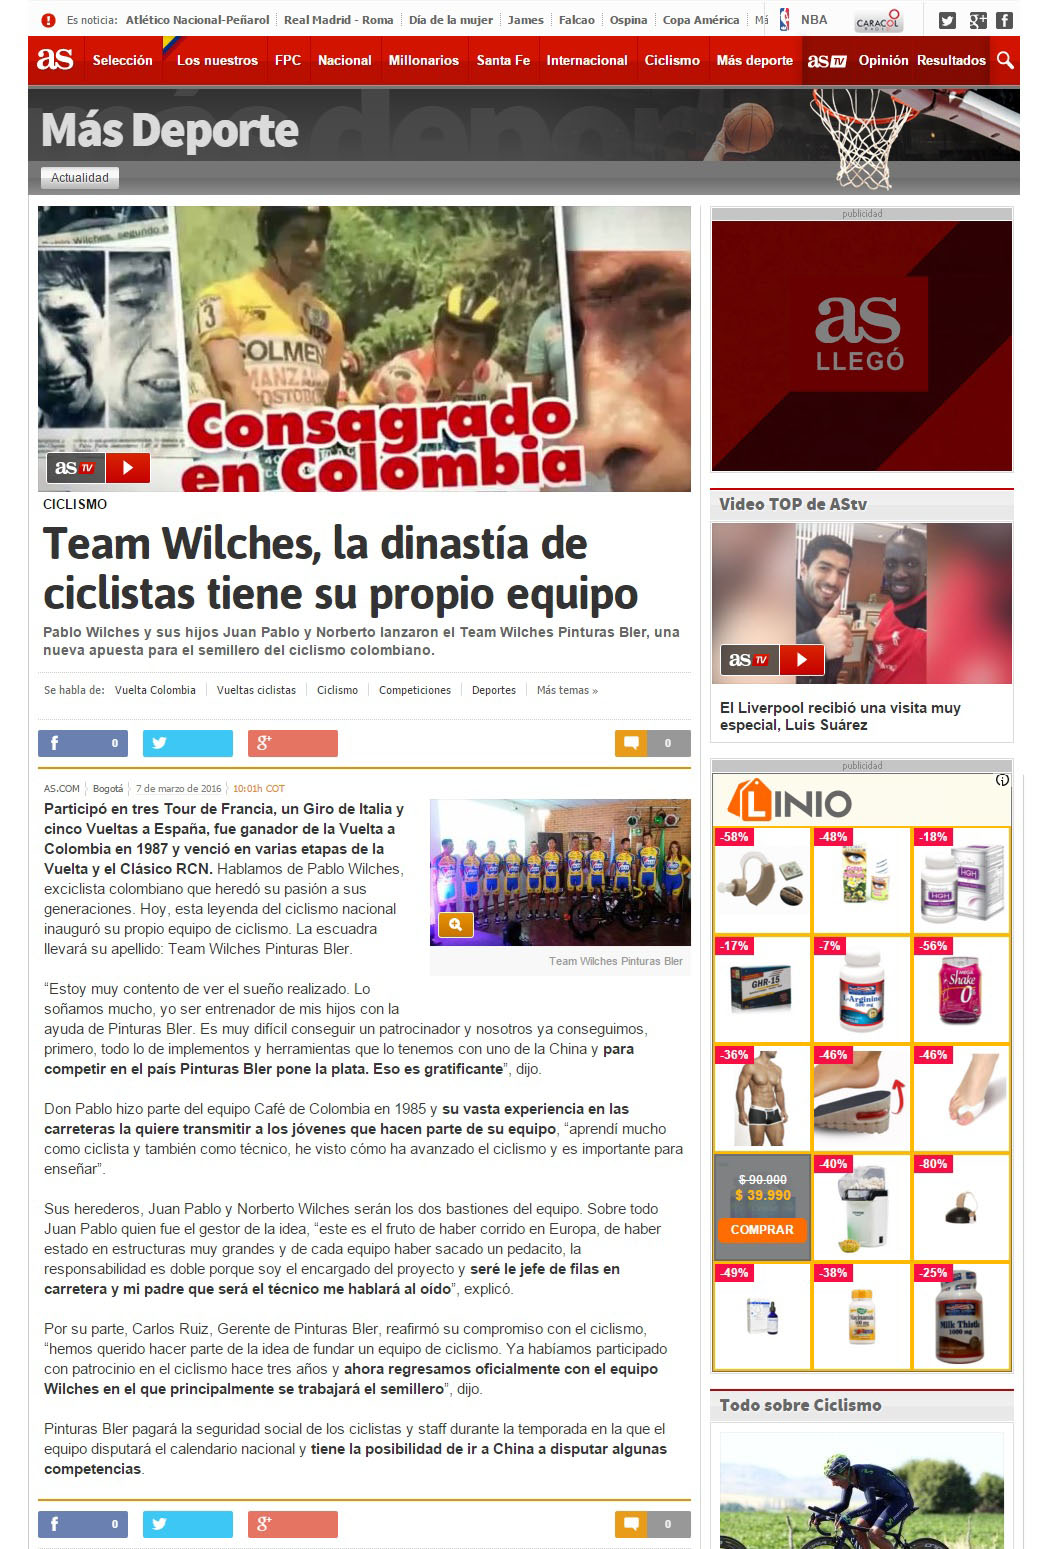 As Colombia 7 de Marzo 2016 [web]